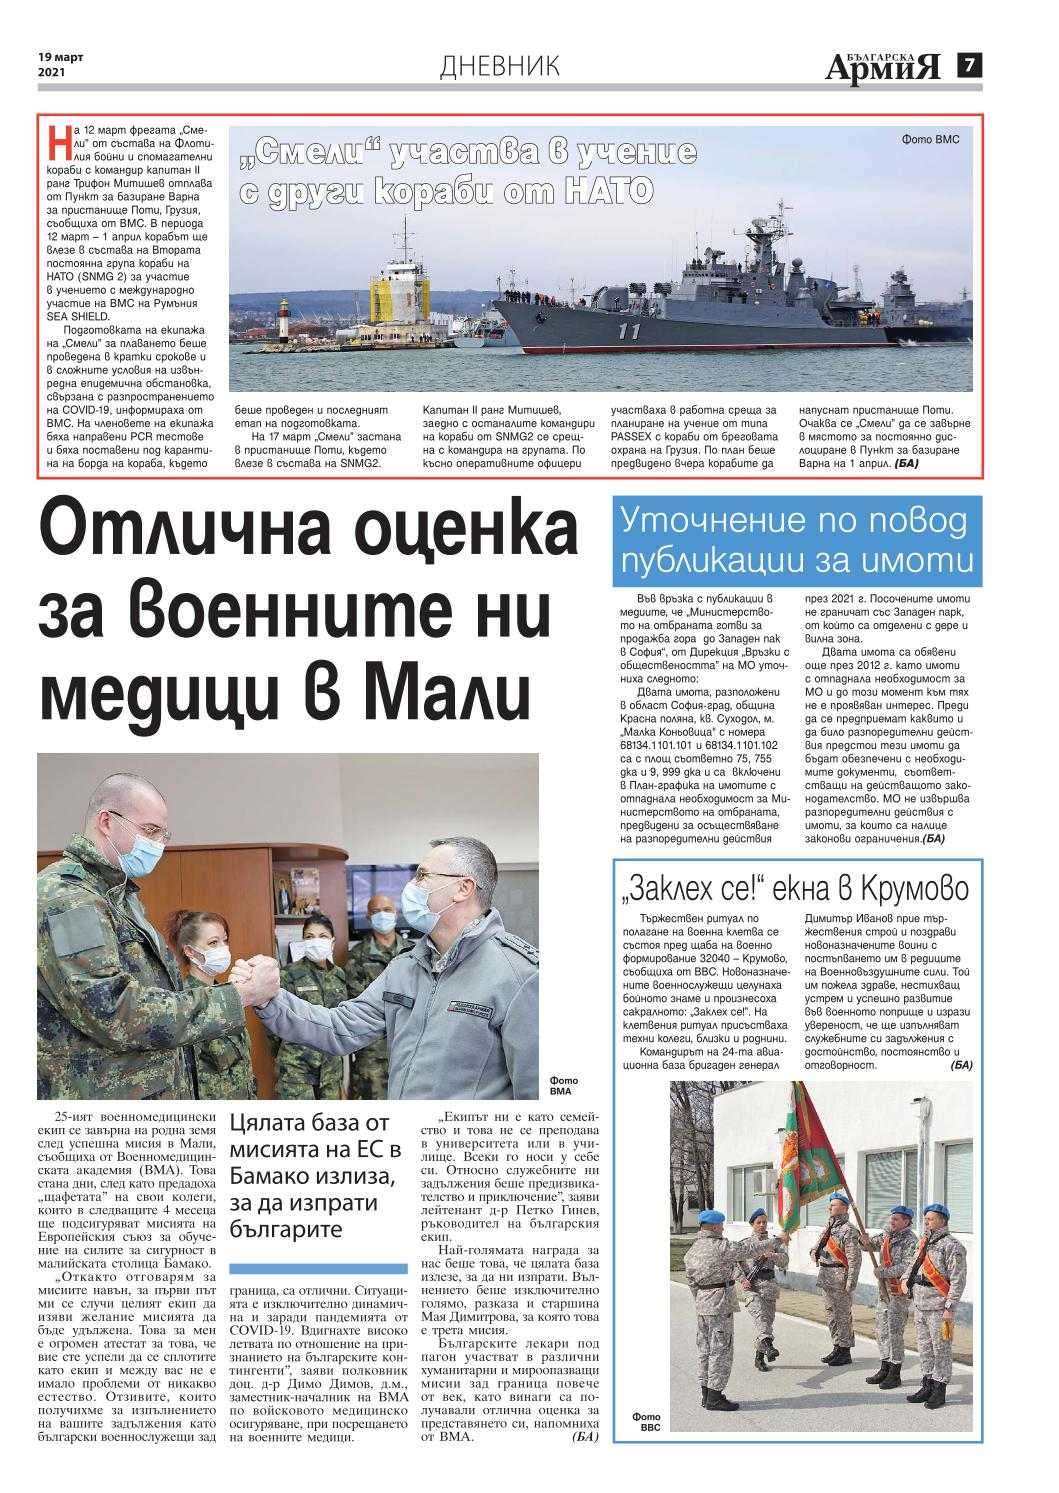 https://armymedia.bg/wp-content/uploads/2021/04/07.page1_-152.jpg